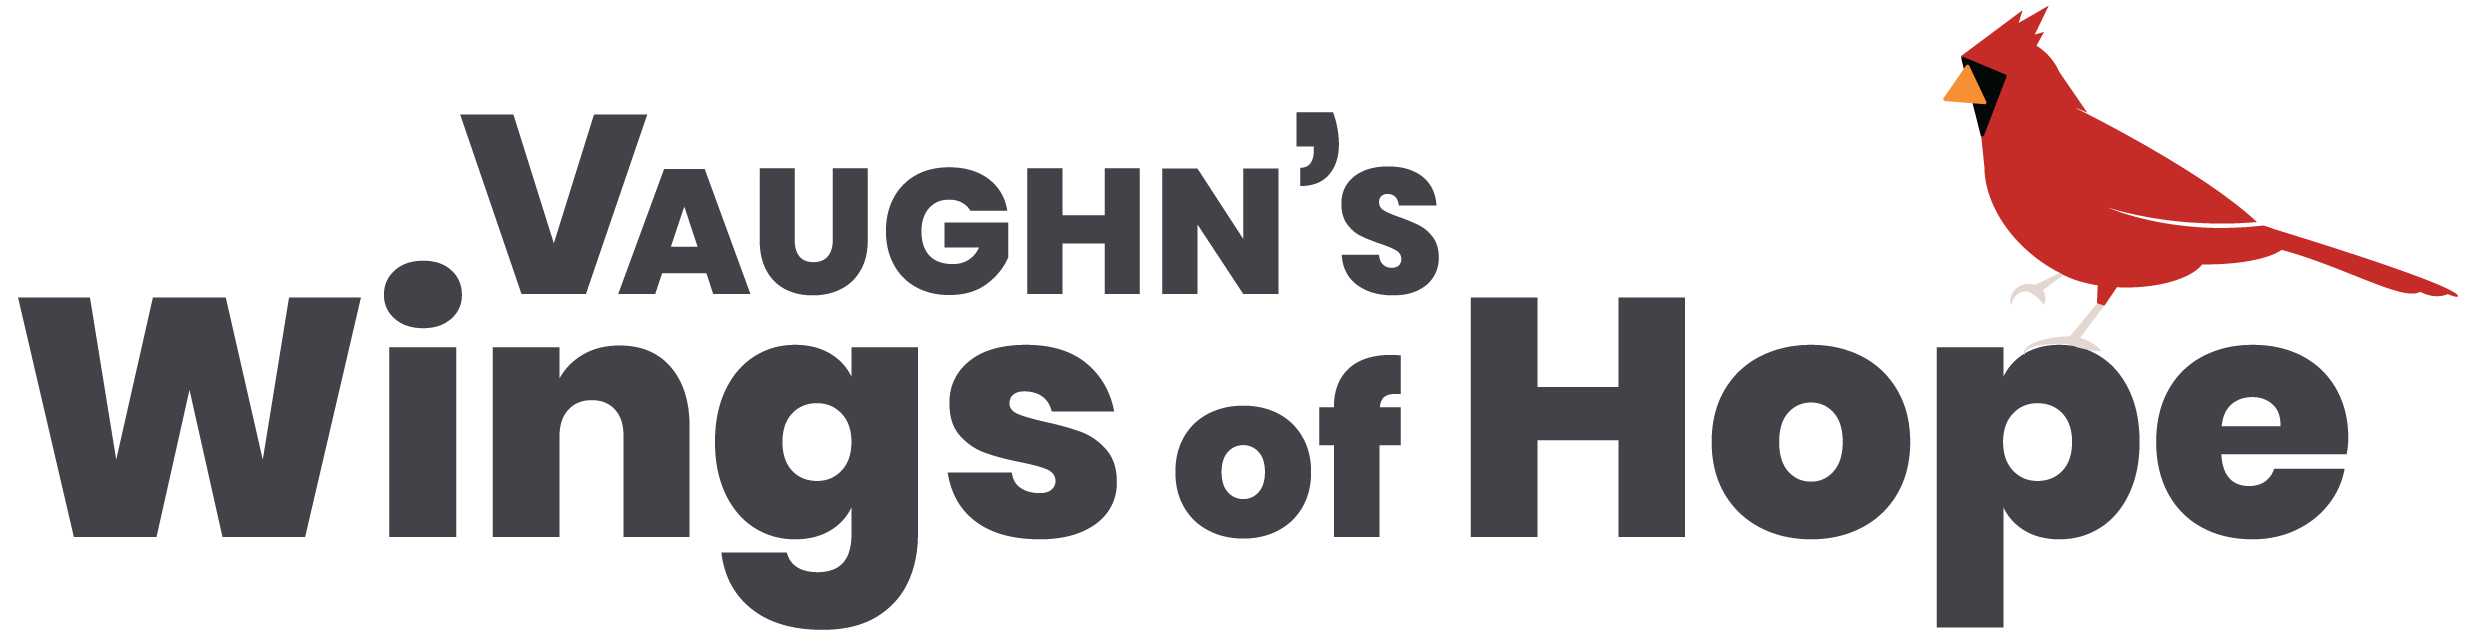 Vaughns wings of hope logo